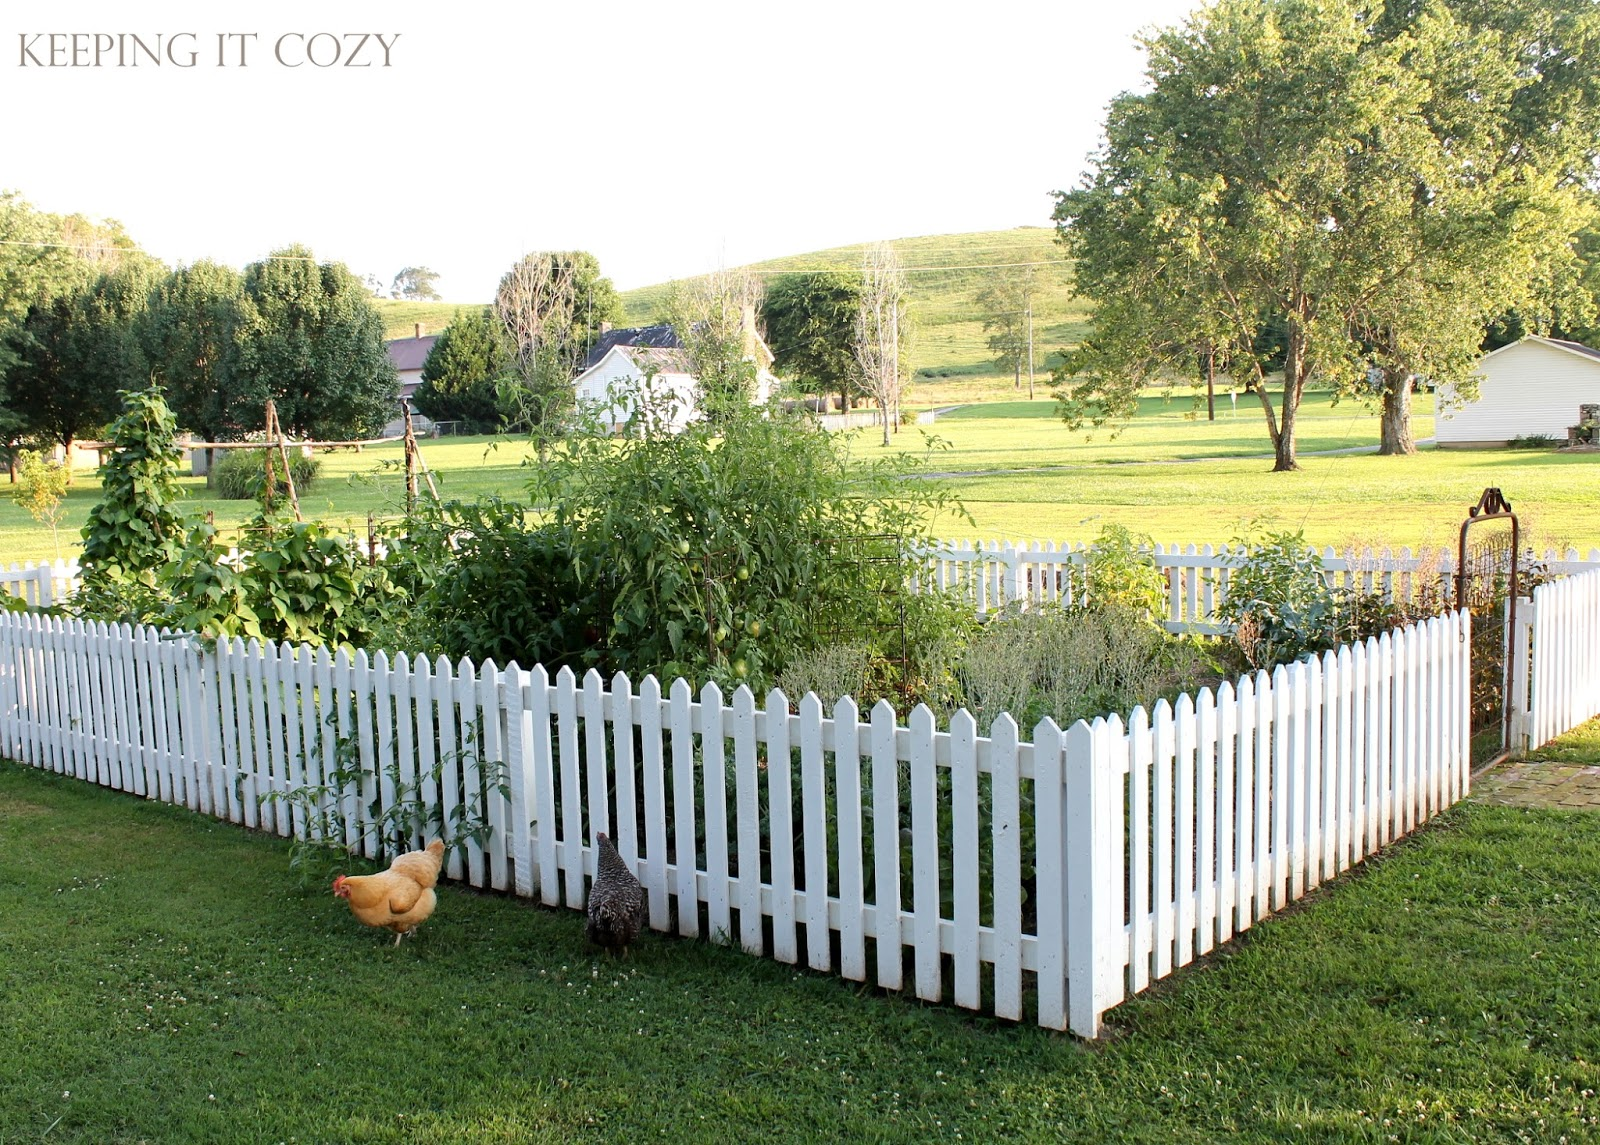 Our Fence Has Worked Wonderfully In Keeping The Chickens Out. In Fact, Not  One Hen Has Made It In Yet. (Plus It Helps My Garden Look Pretty From The  Road... ...